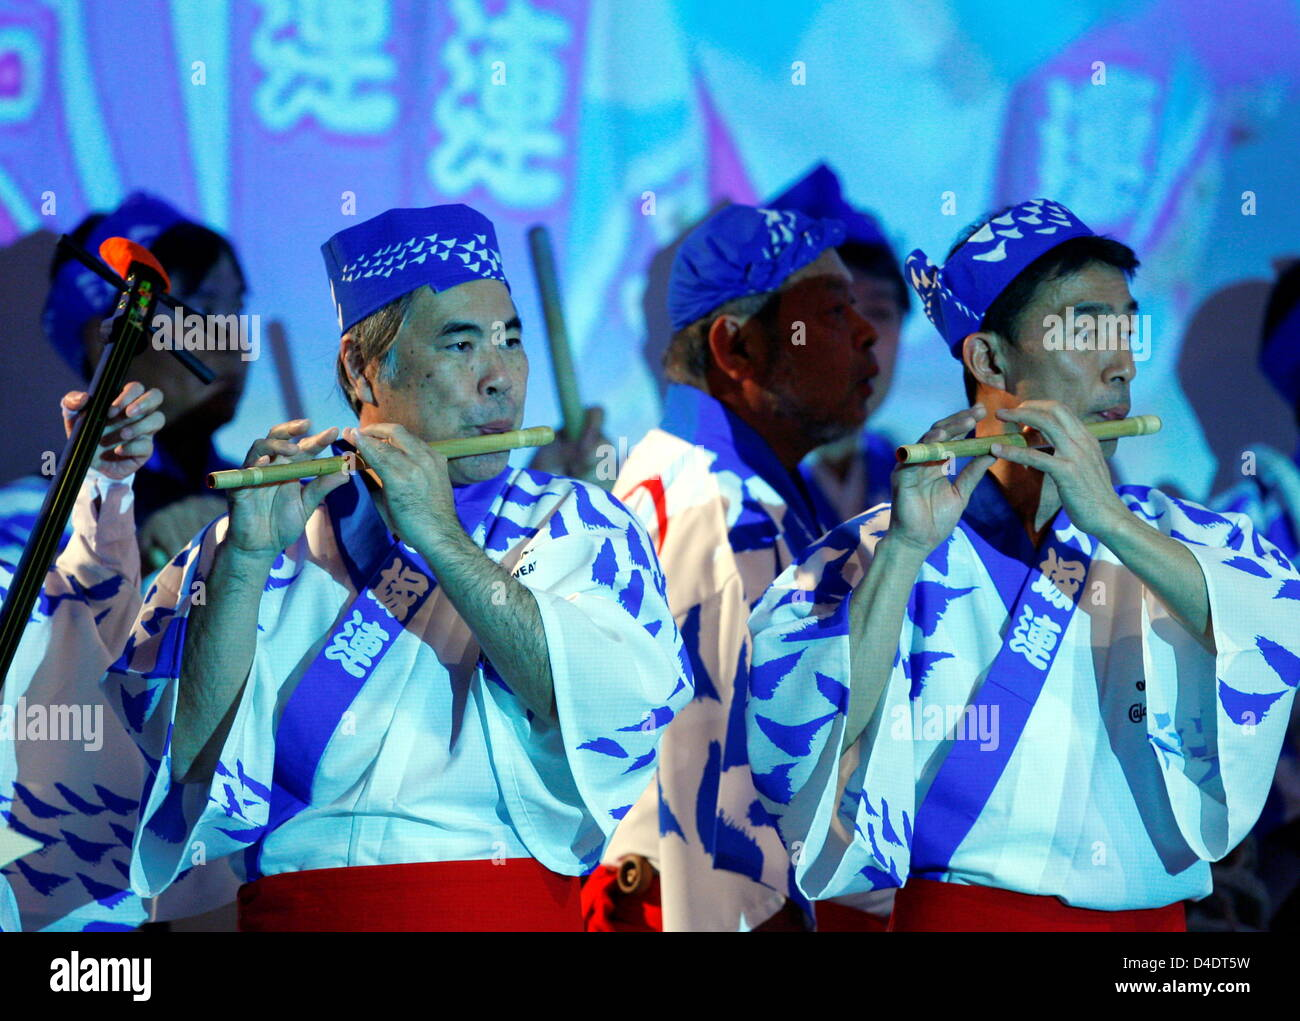 Worlds Fair Japan Stock Photos Amp Worlds Fair Japan Stock Images Alamy